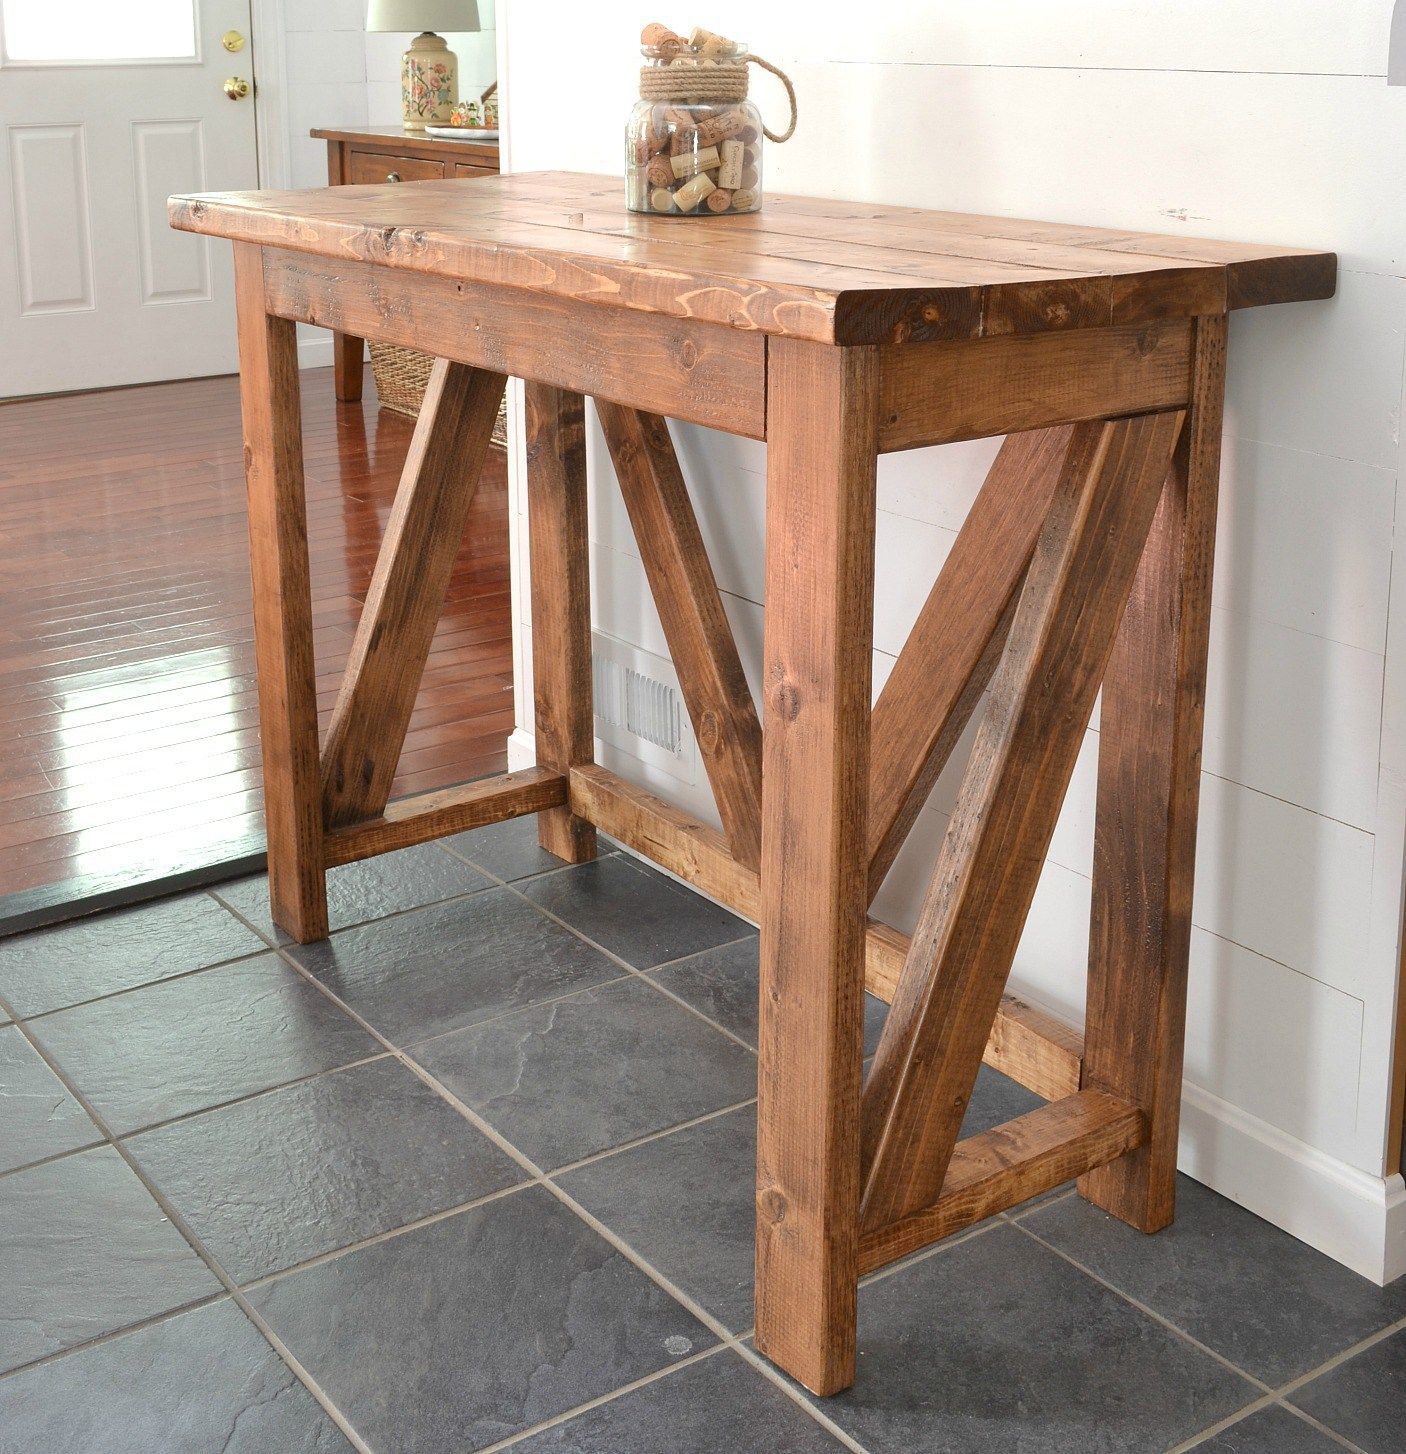 Diy Rustic Breakfast Bar That Could Also Be Used As A Stand Up Desk Or Console Table And It Only Costs 40 To Make